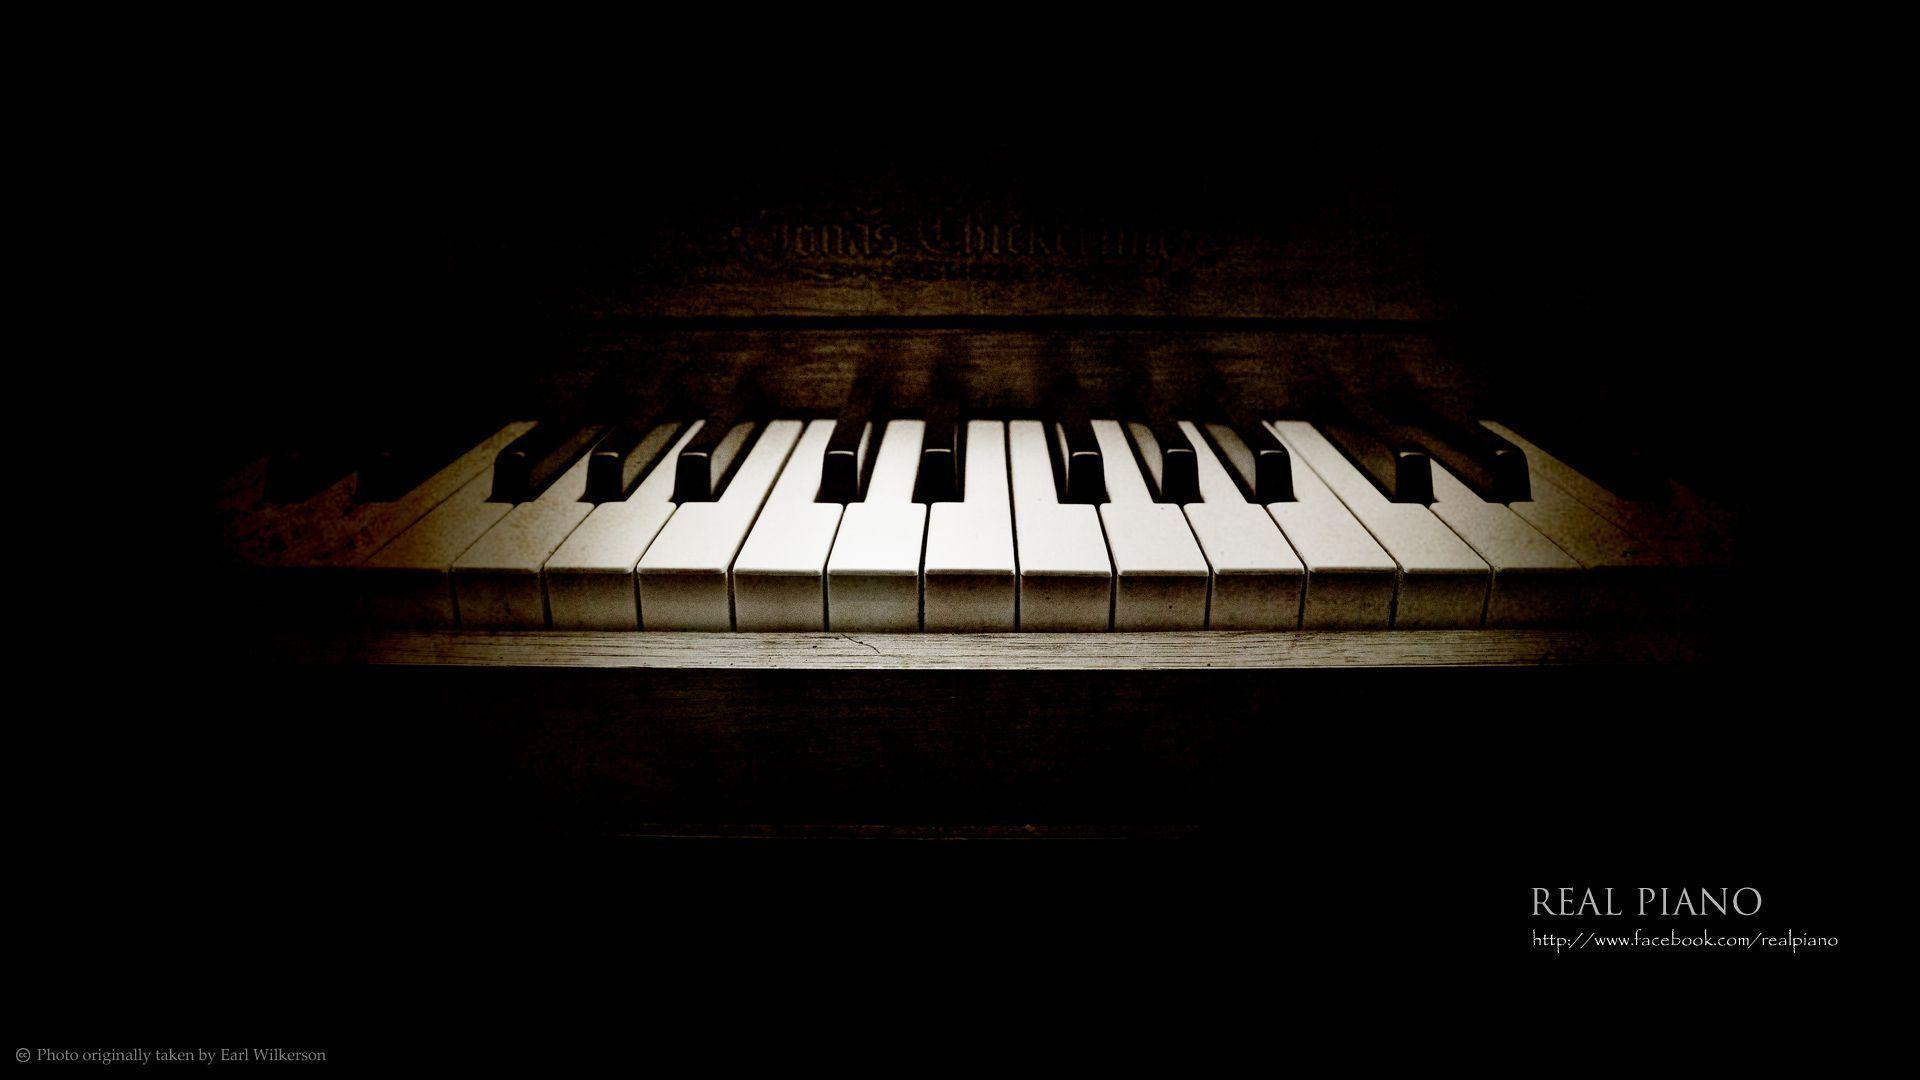 abstract piano art wallpaper - photo #4